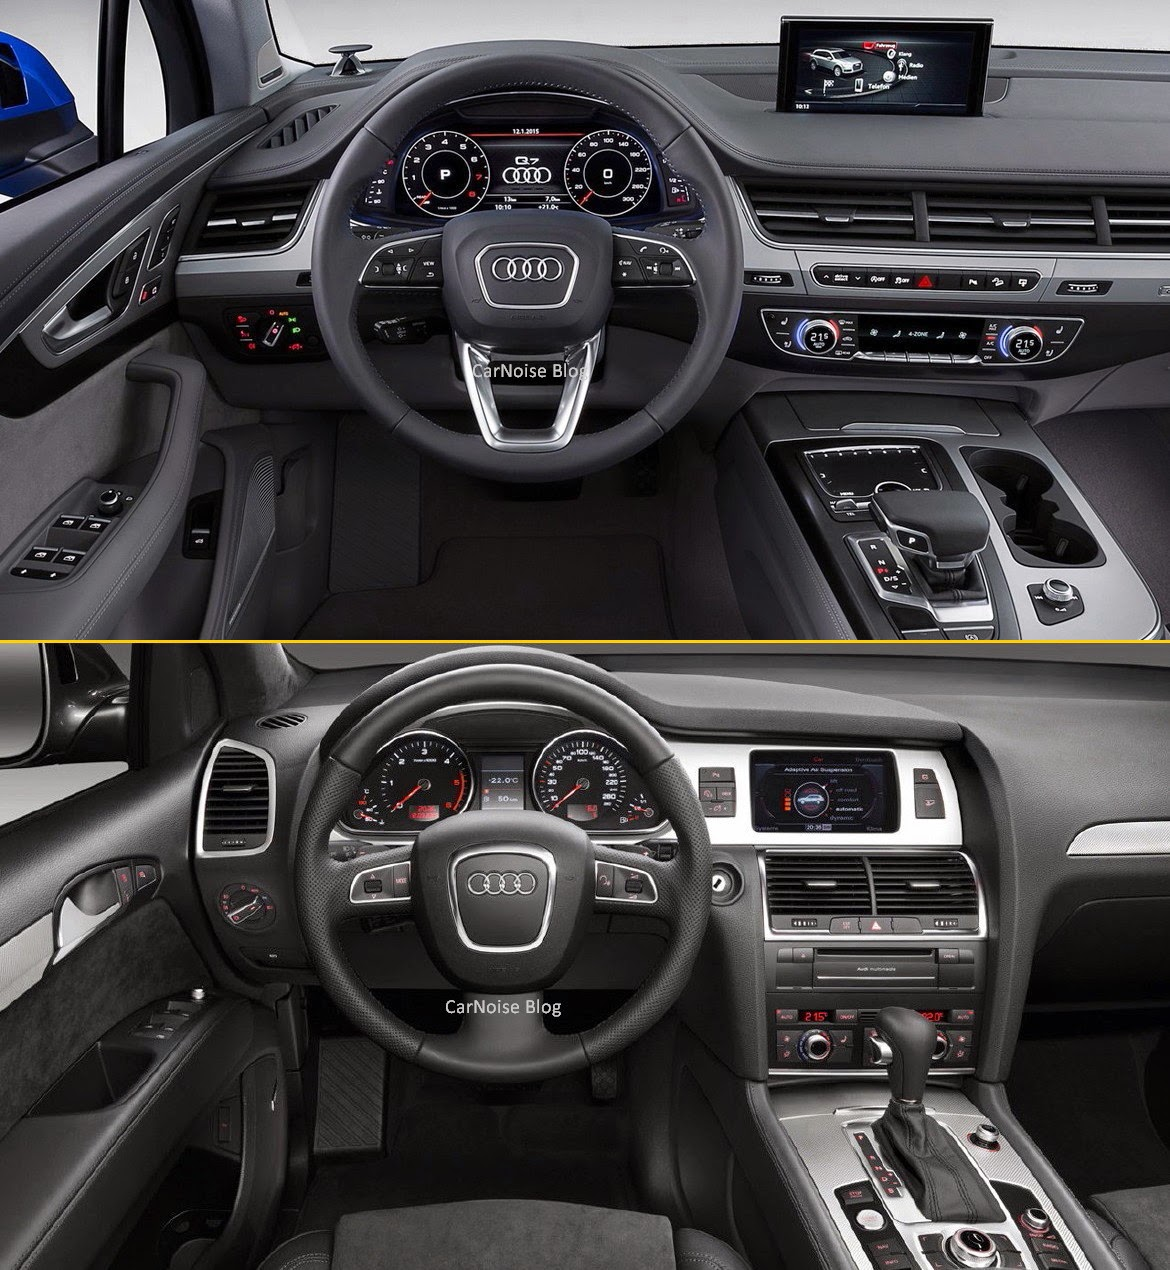 2012 Infiniti Qx Interior: Comparison: Audi Q7 New Vs Old - How Different